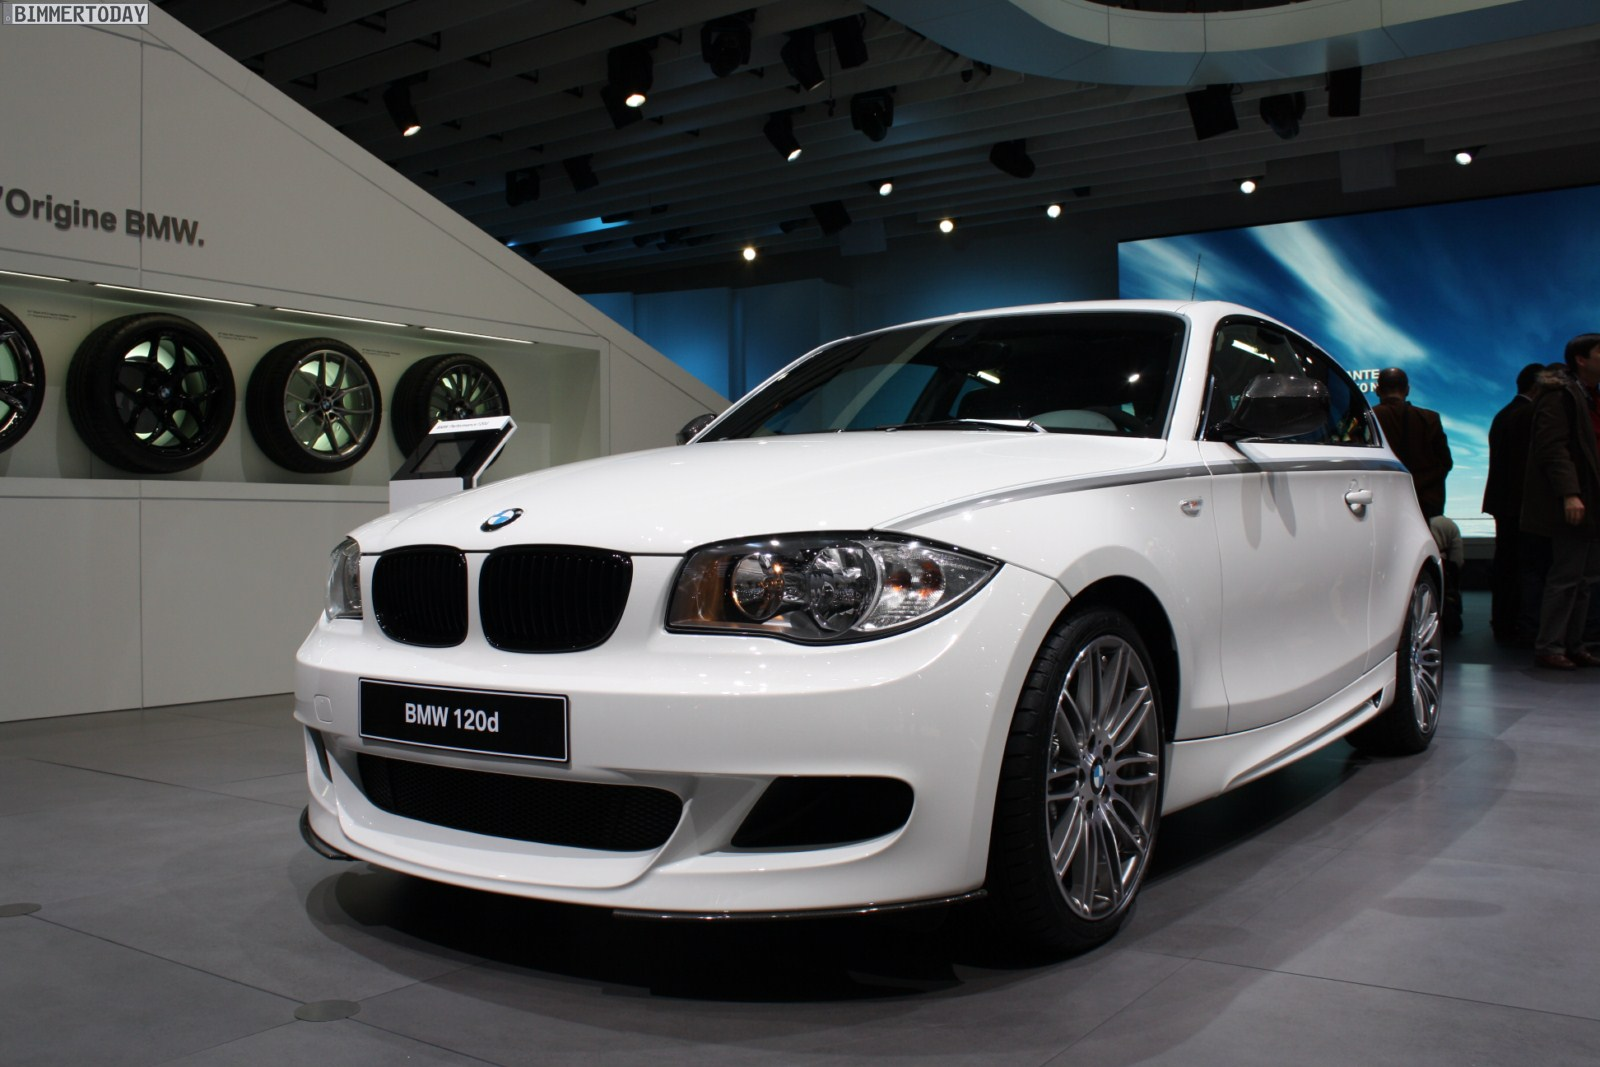 bmw 120d technical details history photos on better parts ltd. Black Bedroom Furniture Sets. Home Design Ideas